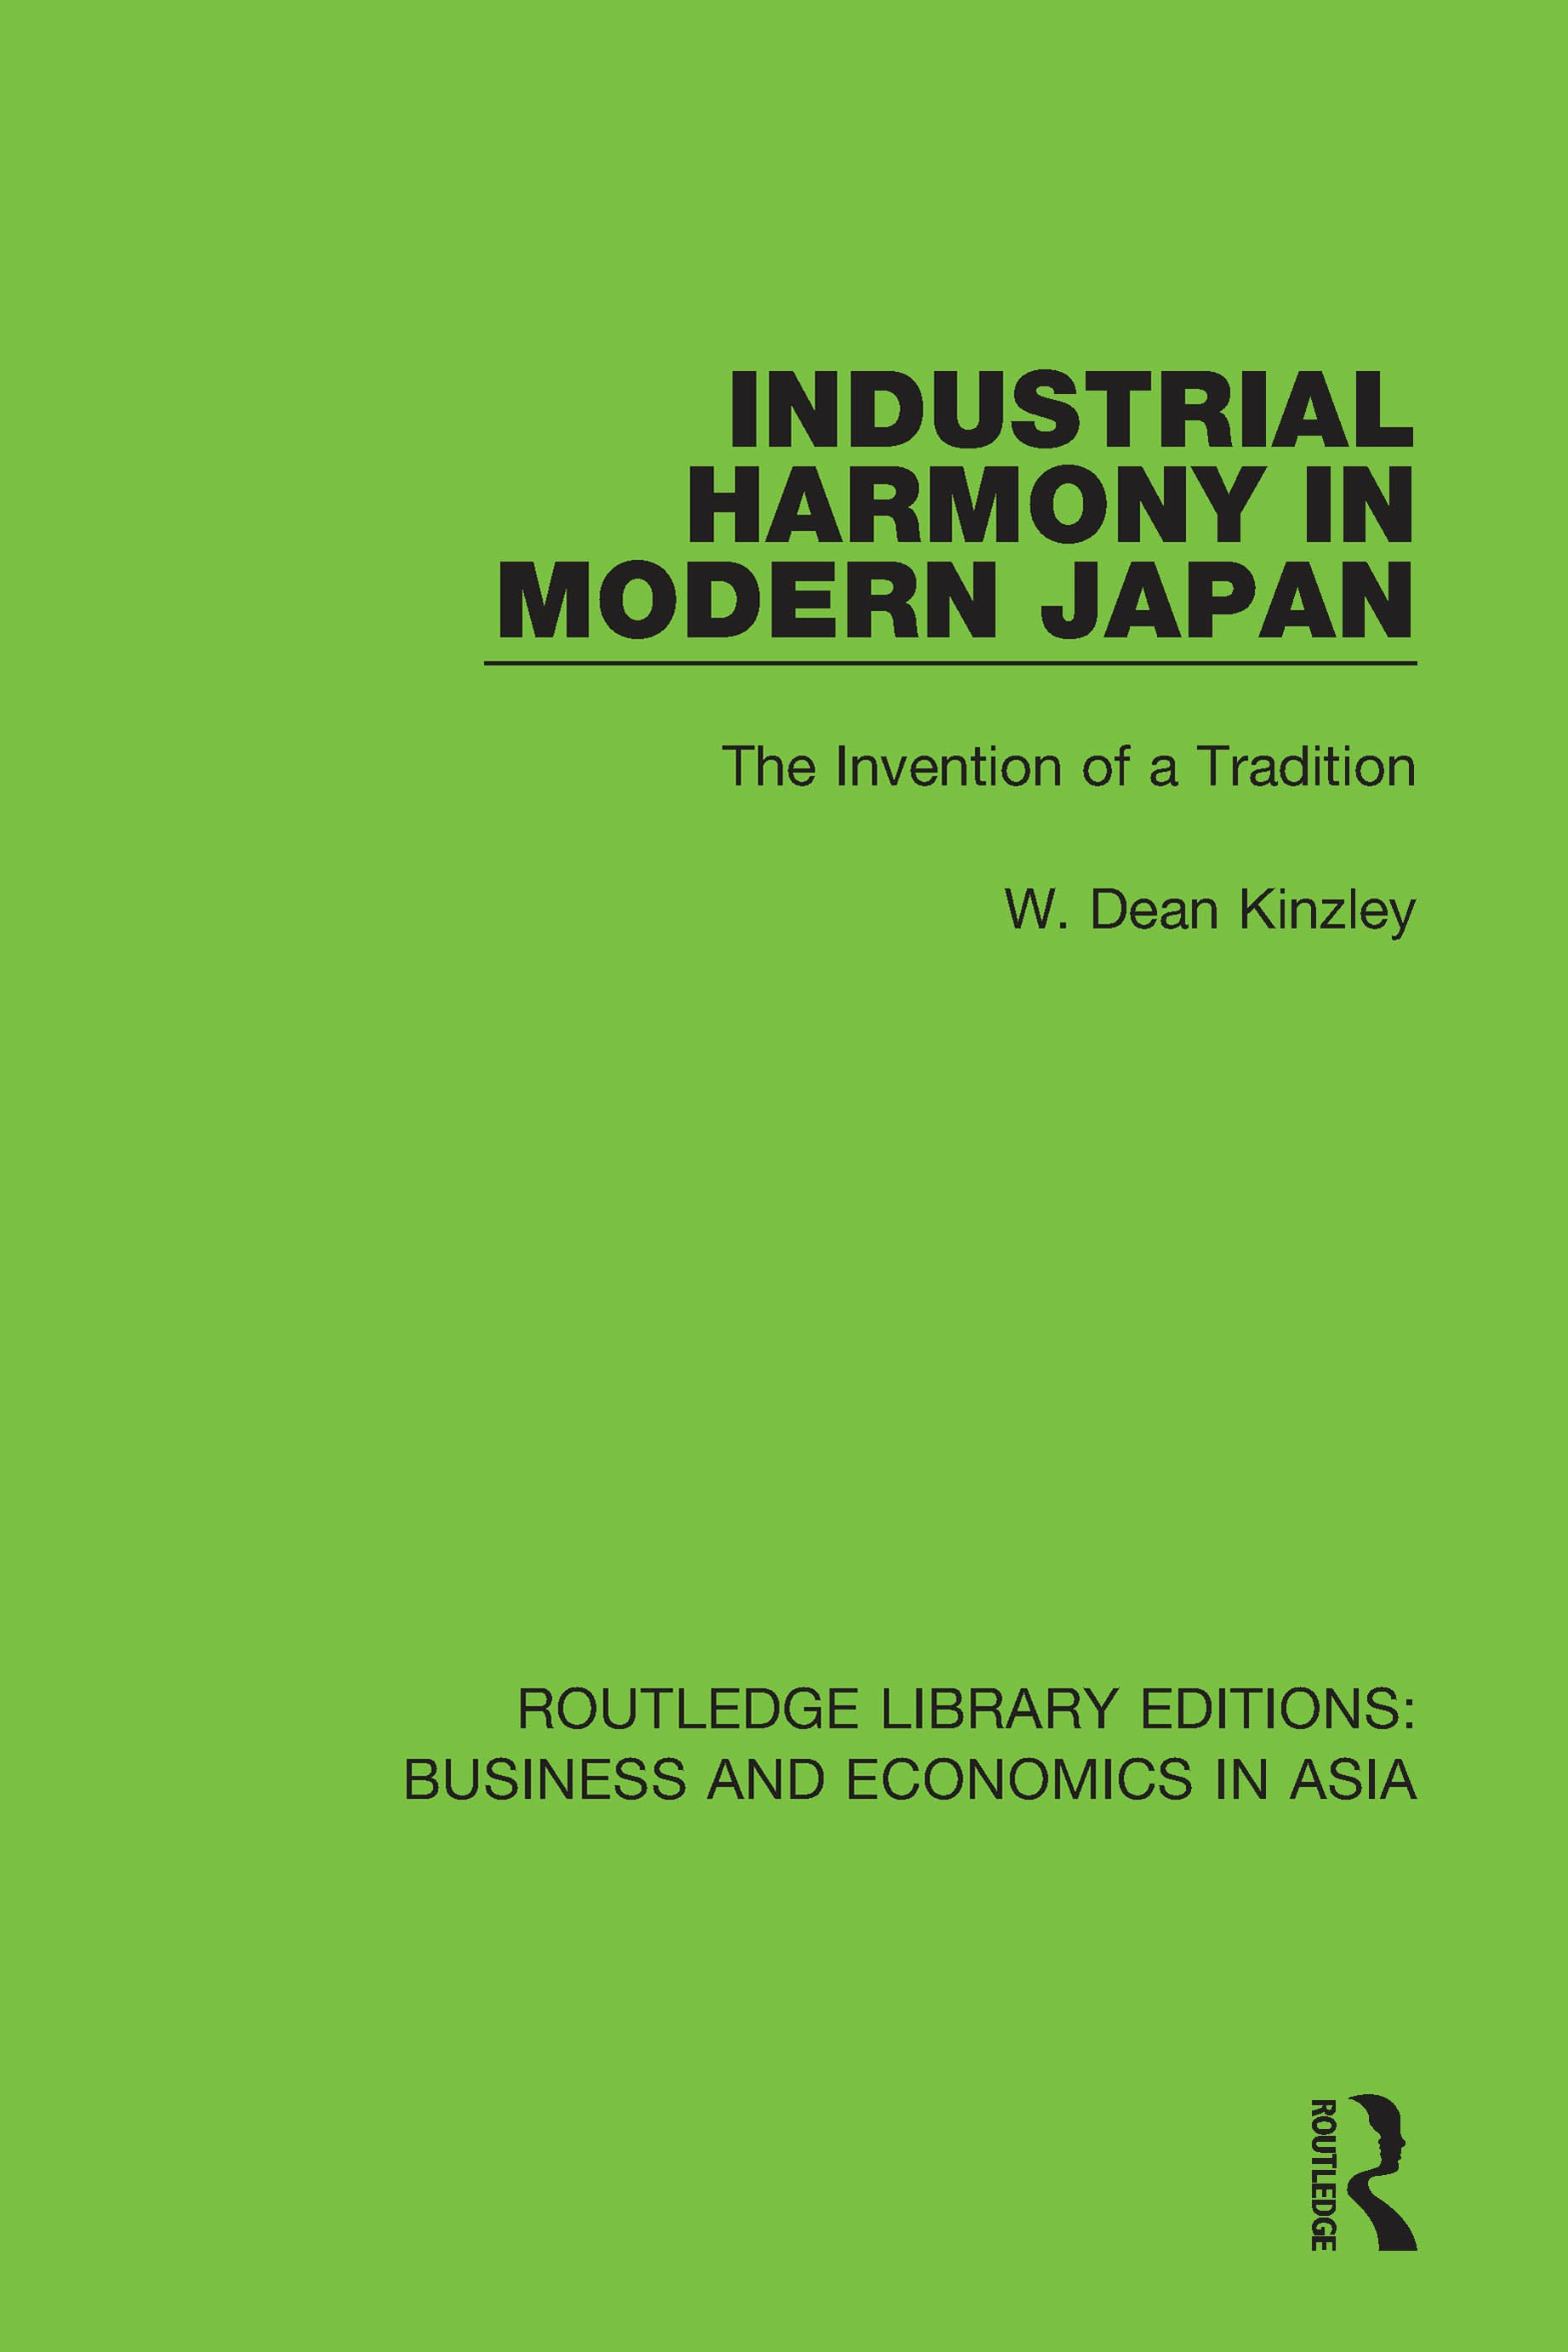 Industrial Harmony in Modern Japan: The Invention of a Tradition book cover